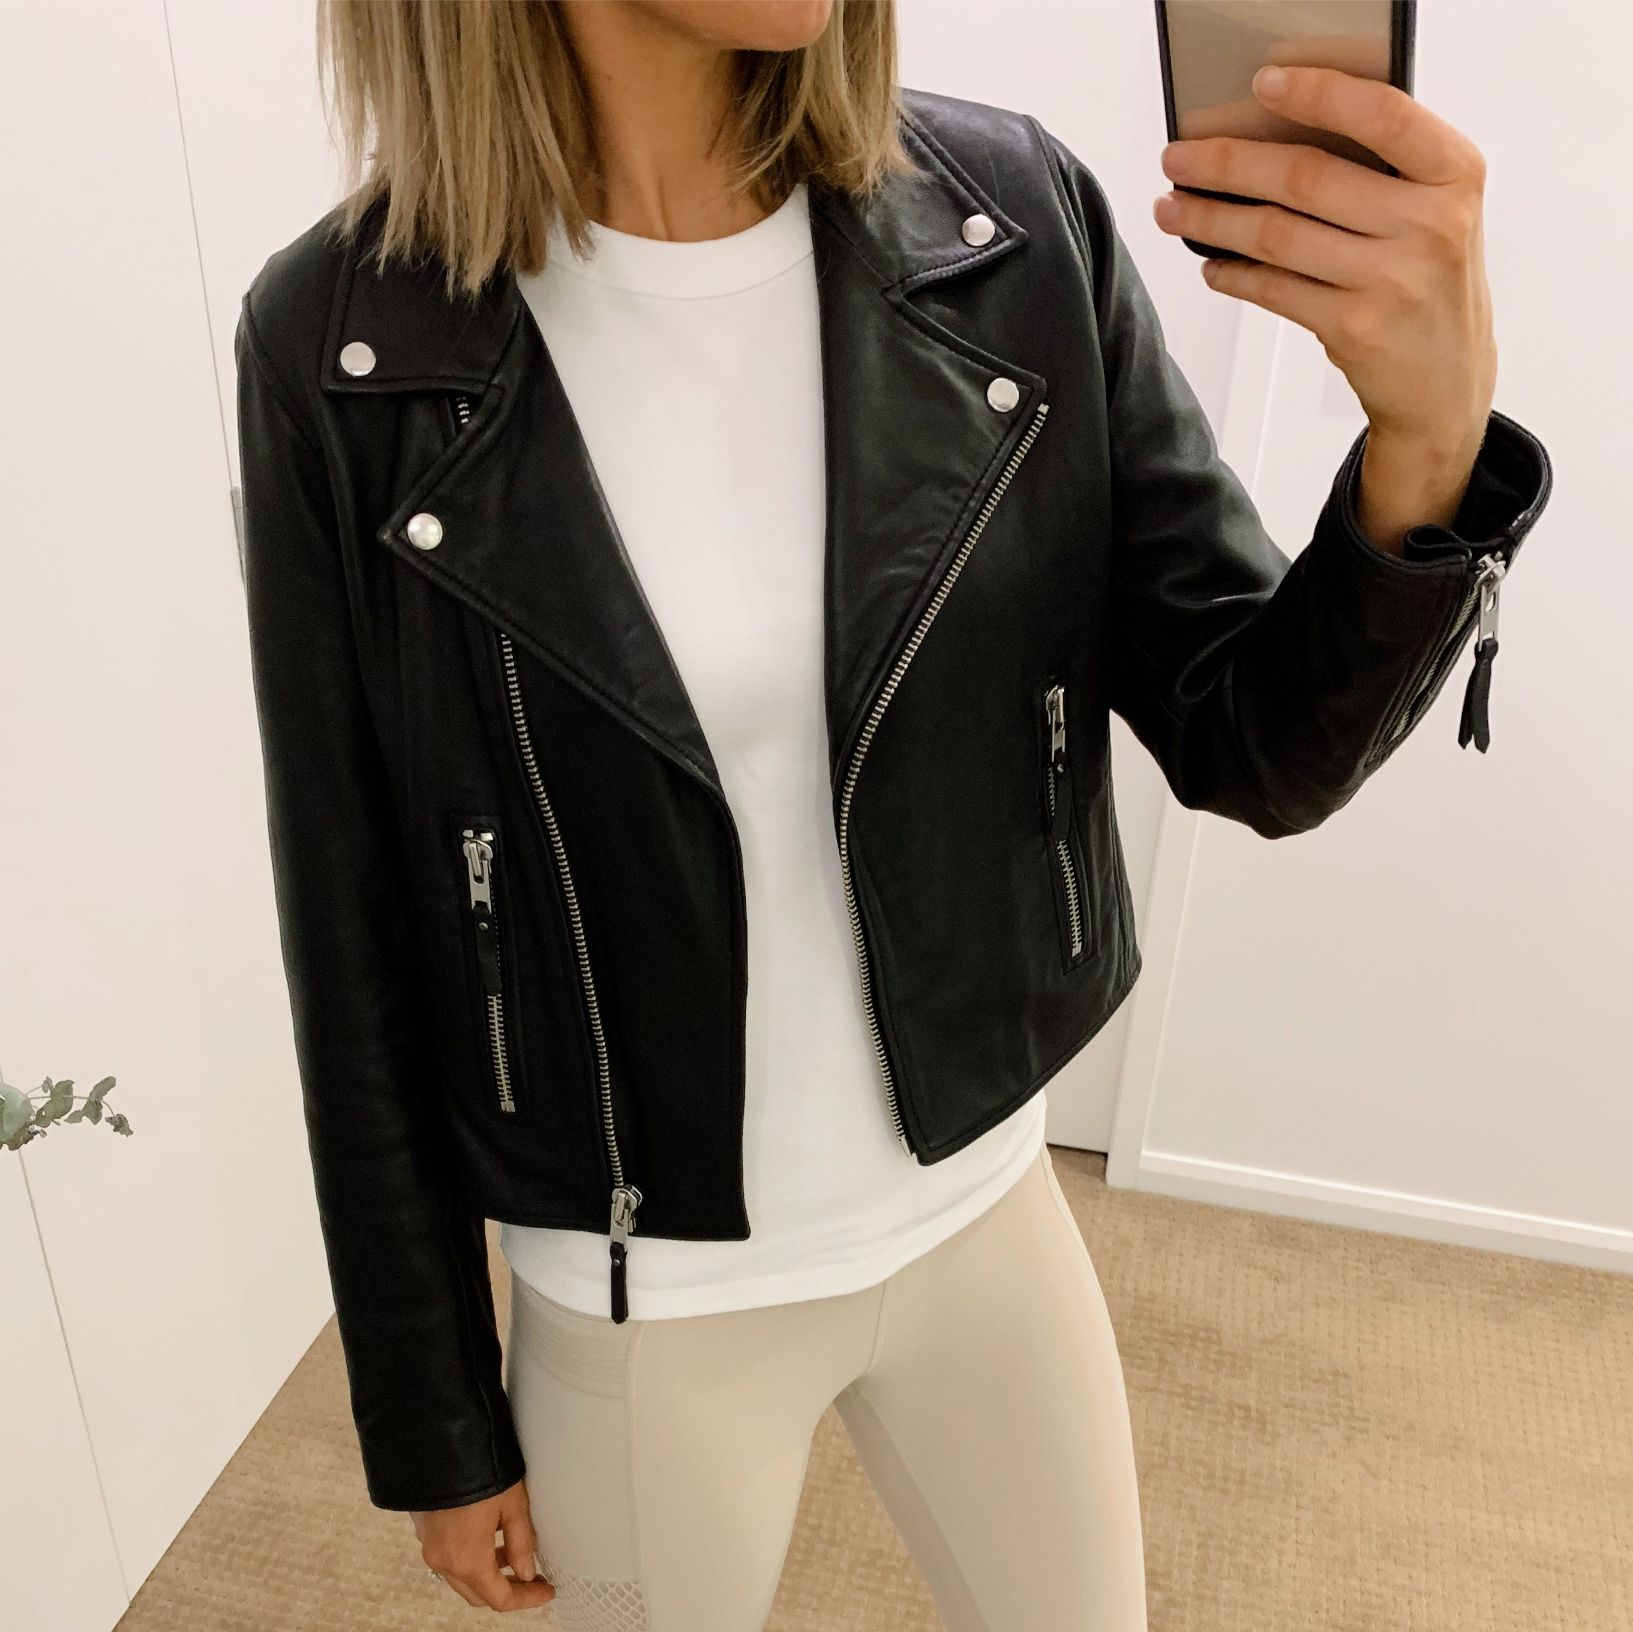 athleisure outfit ideas pinterest fashion blogger style neutral athletic wear workout everyday outfits errands black leather biker jacket white tee and leggings 3